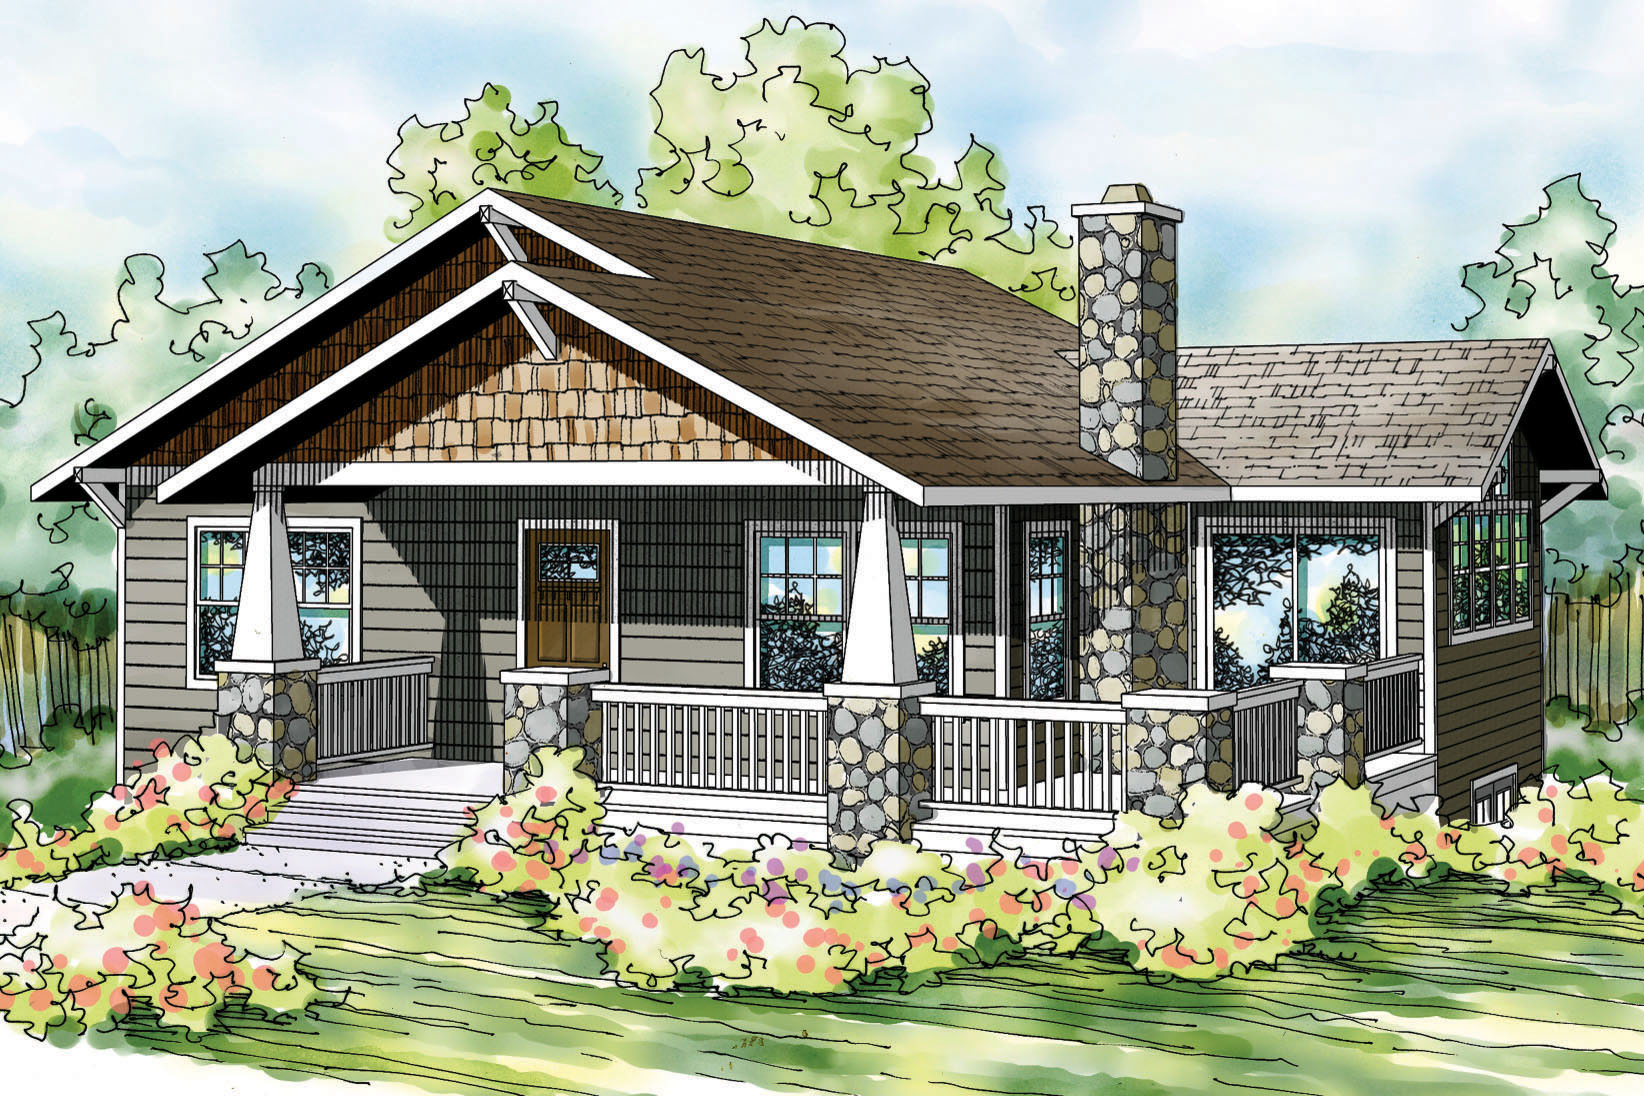 Glamorous Bungalow House Plans - Lone Rock 41-020 - Associated Designs for Bungalow House Style